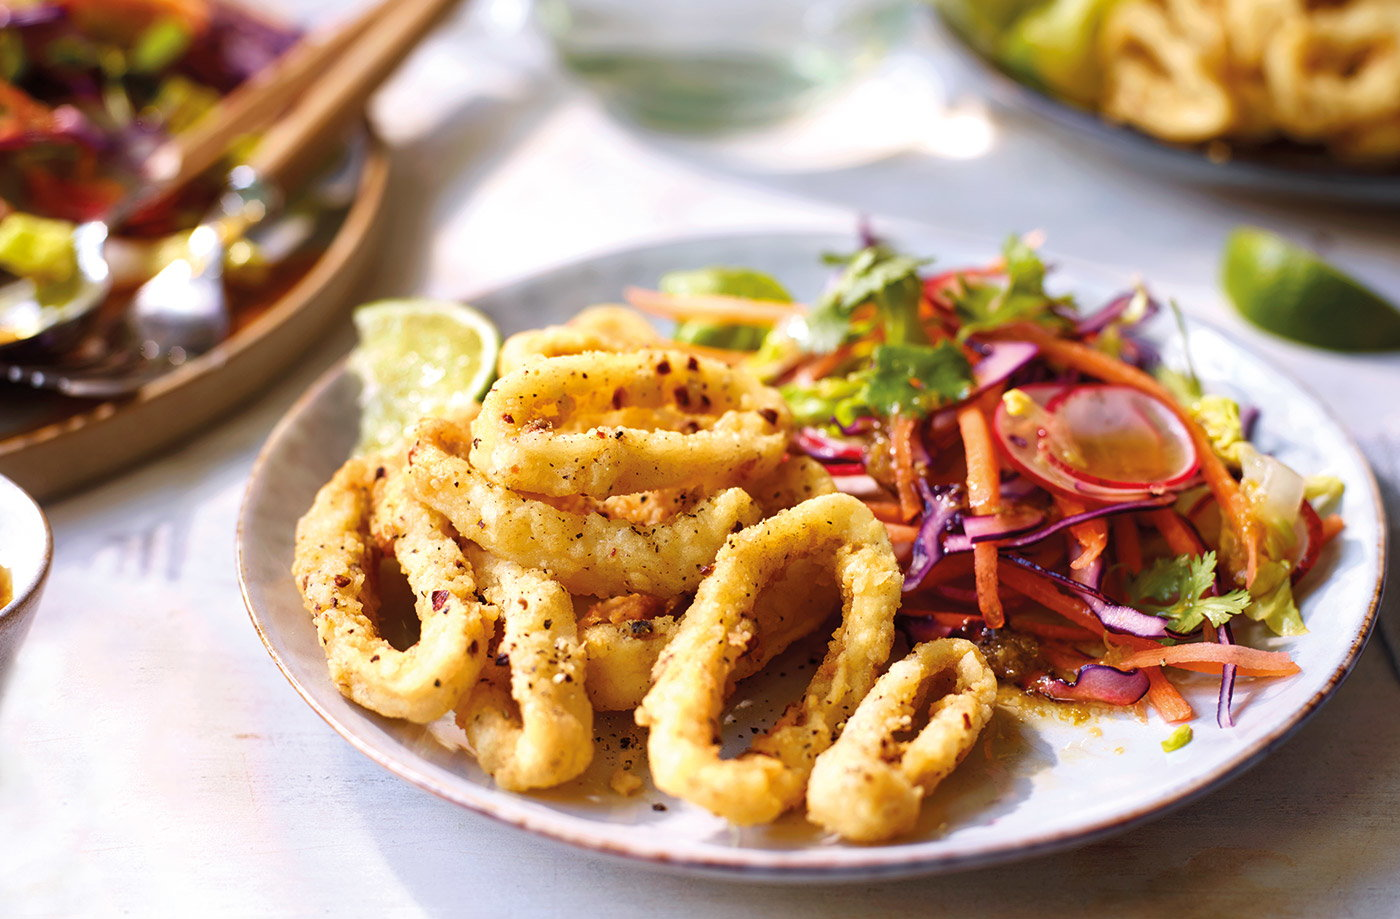 From homemade calamari to Spanish paella, make the most of squid with our tasty squid recipes.